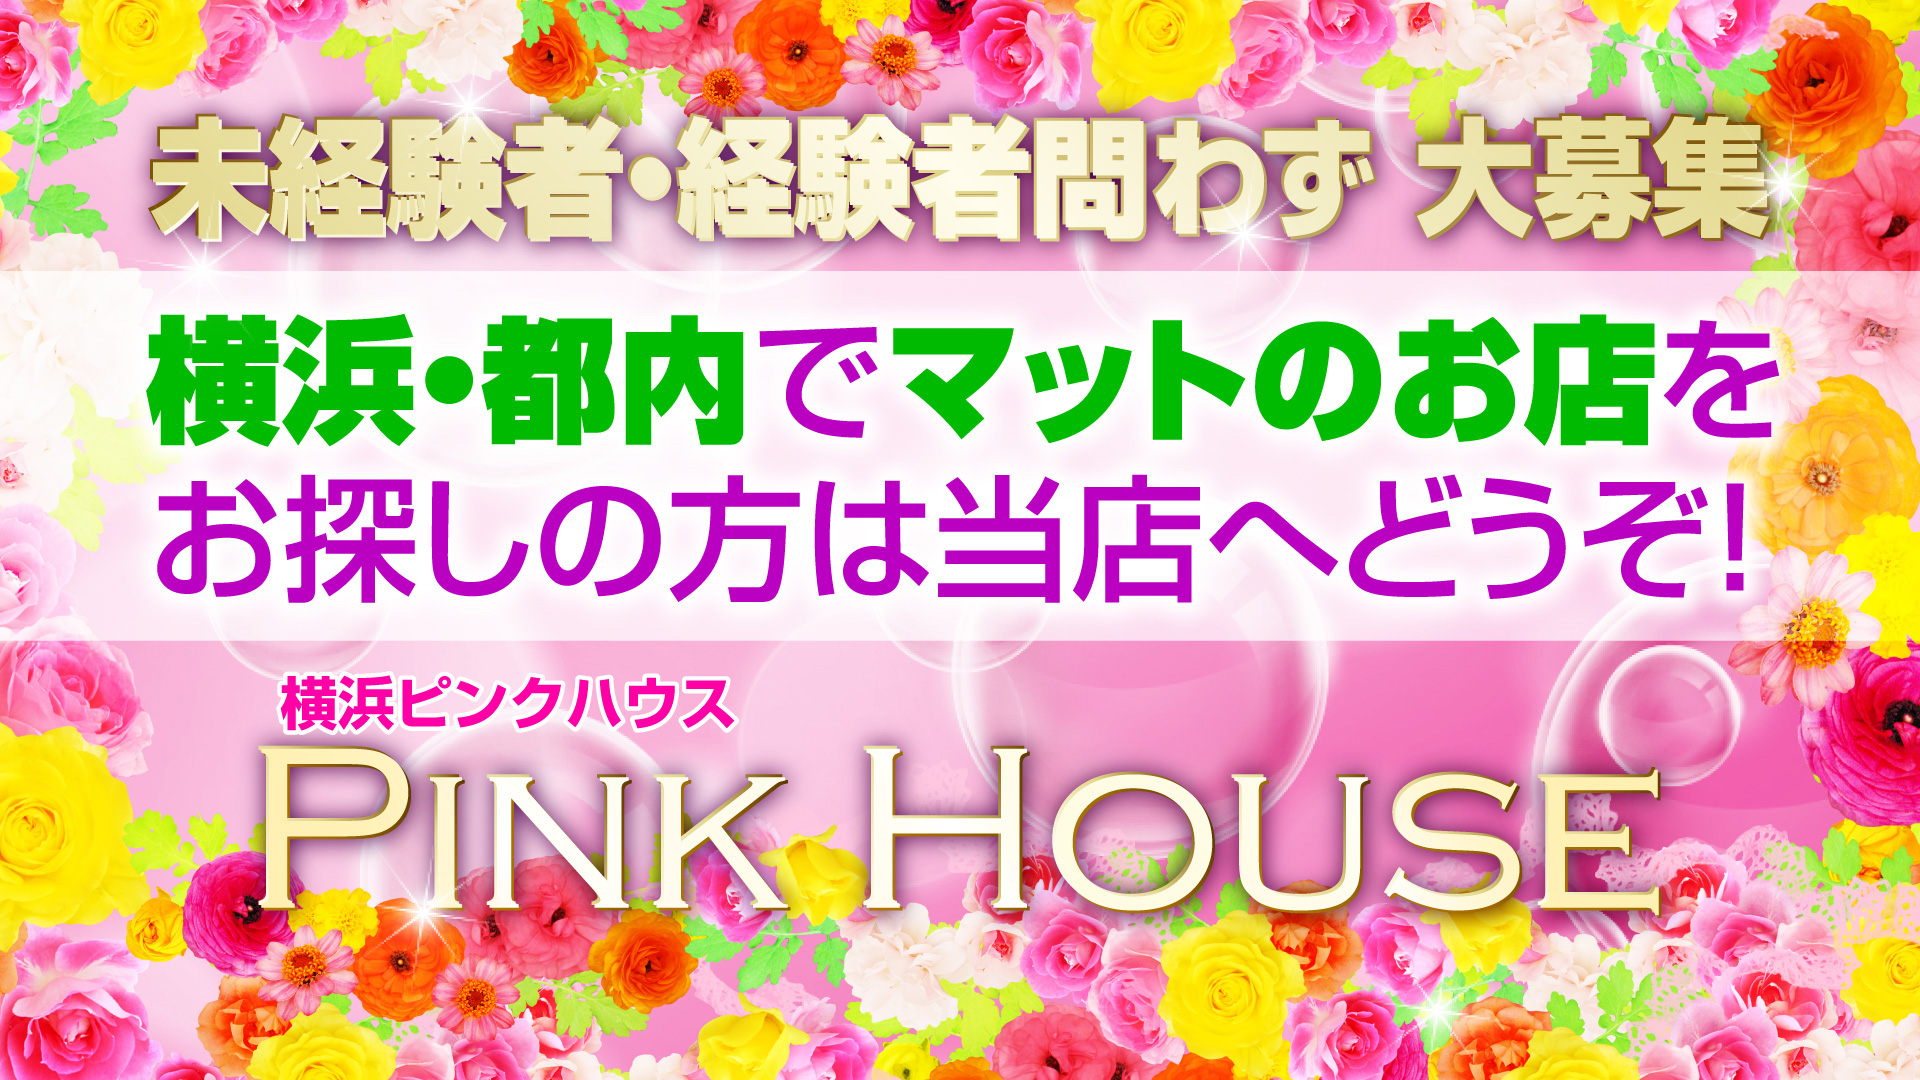 PINK HOUSE(ミクシーグループ)